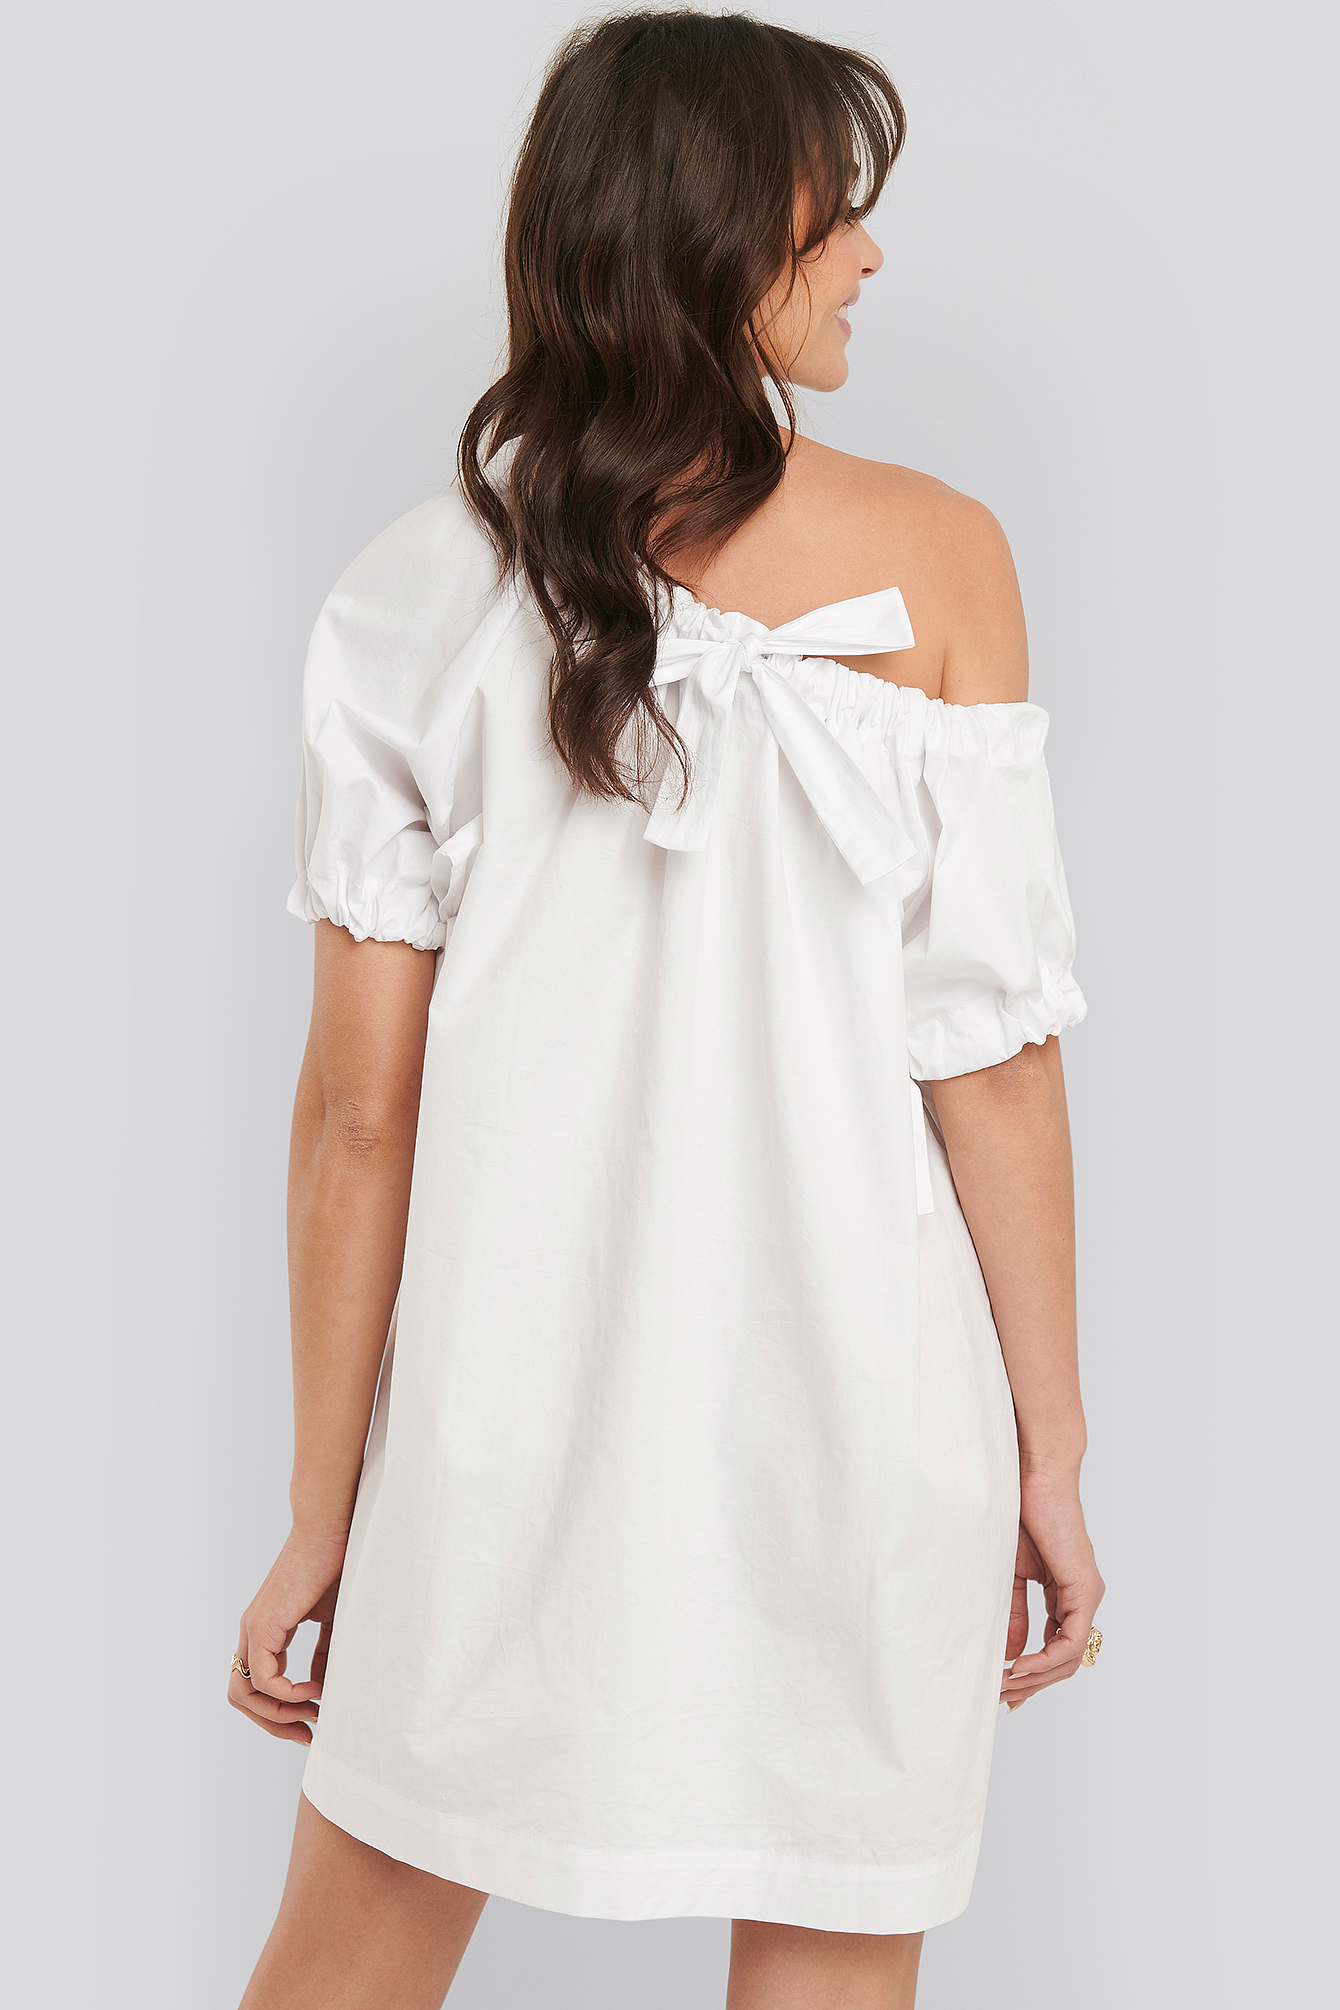 White One Shoulder Cotton Dress